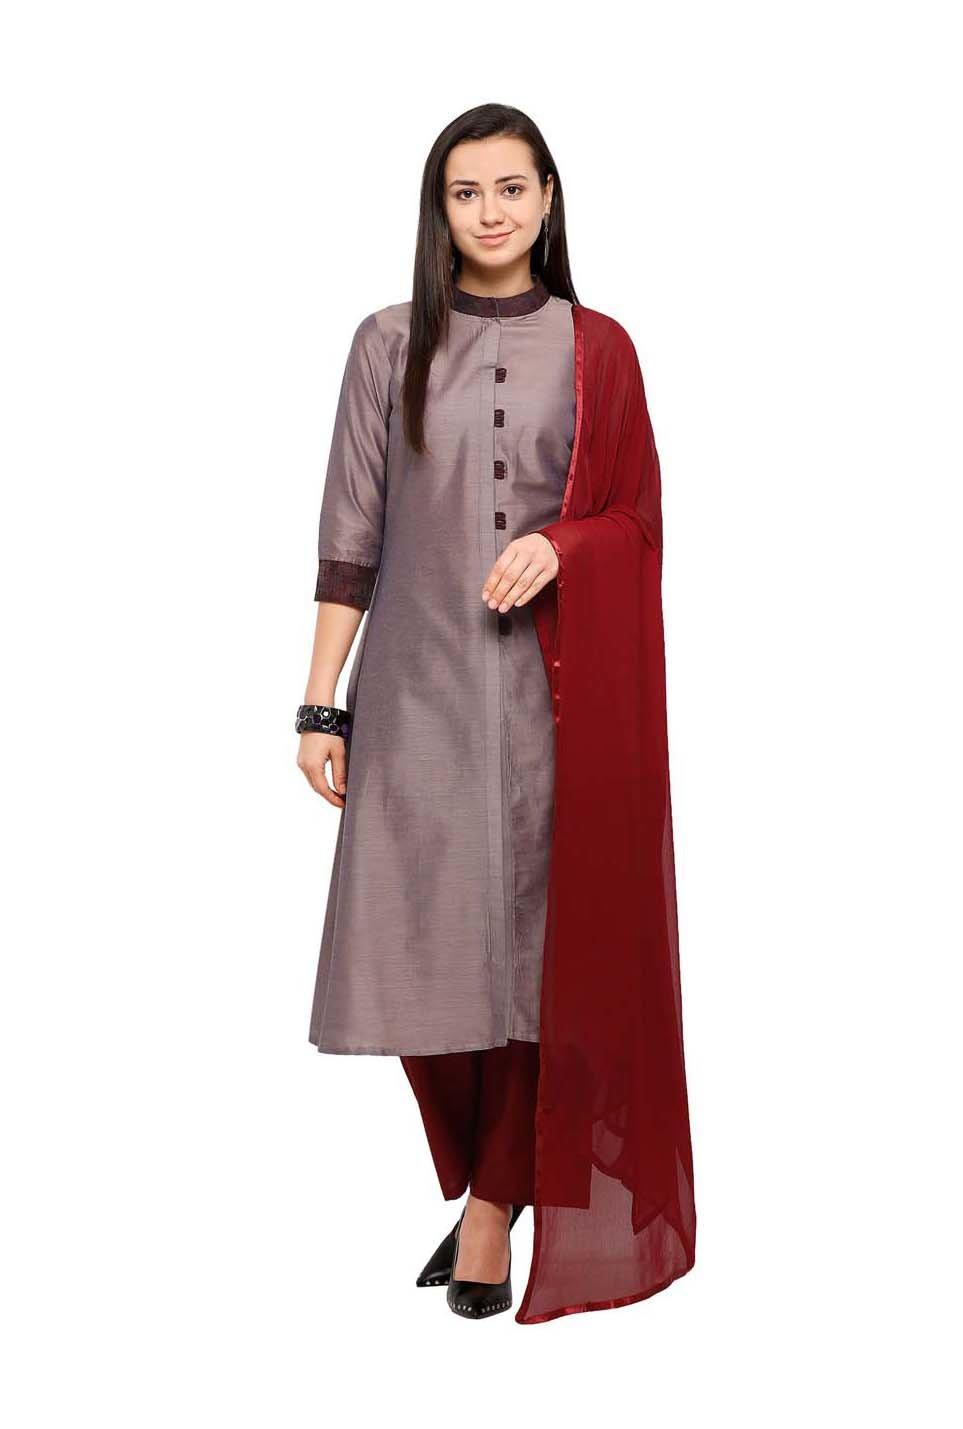 38005516d8 Buy Inddus Brown & Maroon Cotton Dress Material for Women Online ...